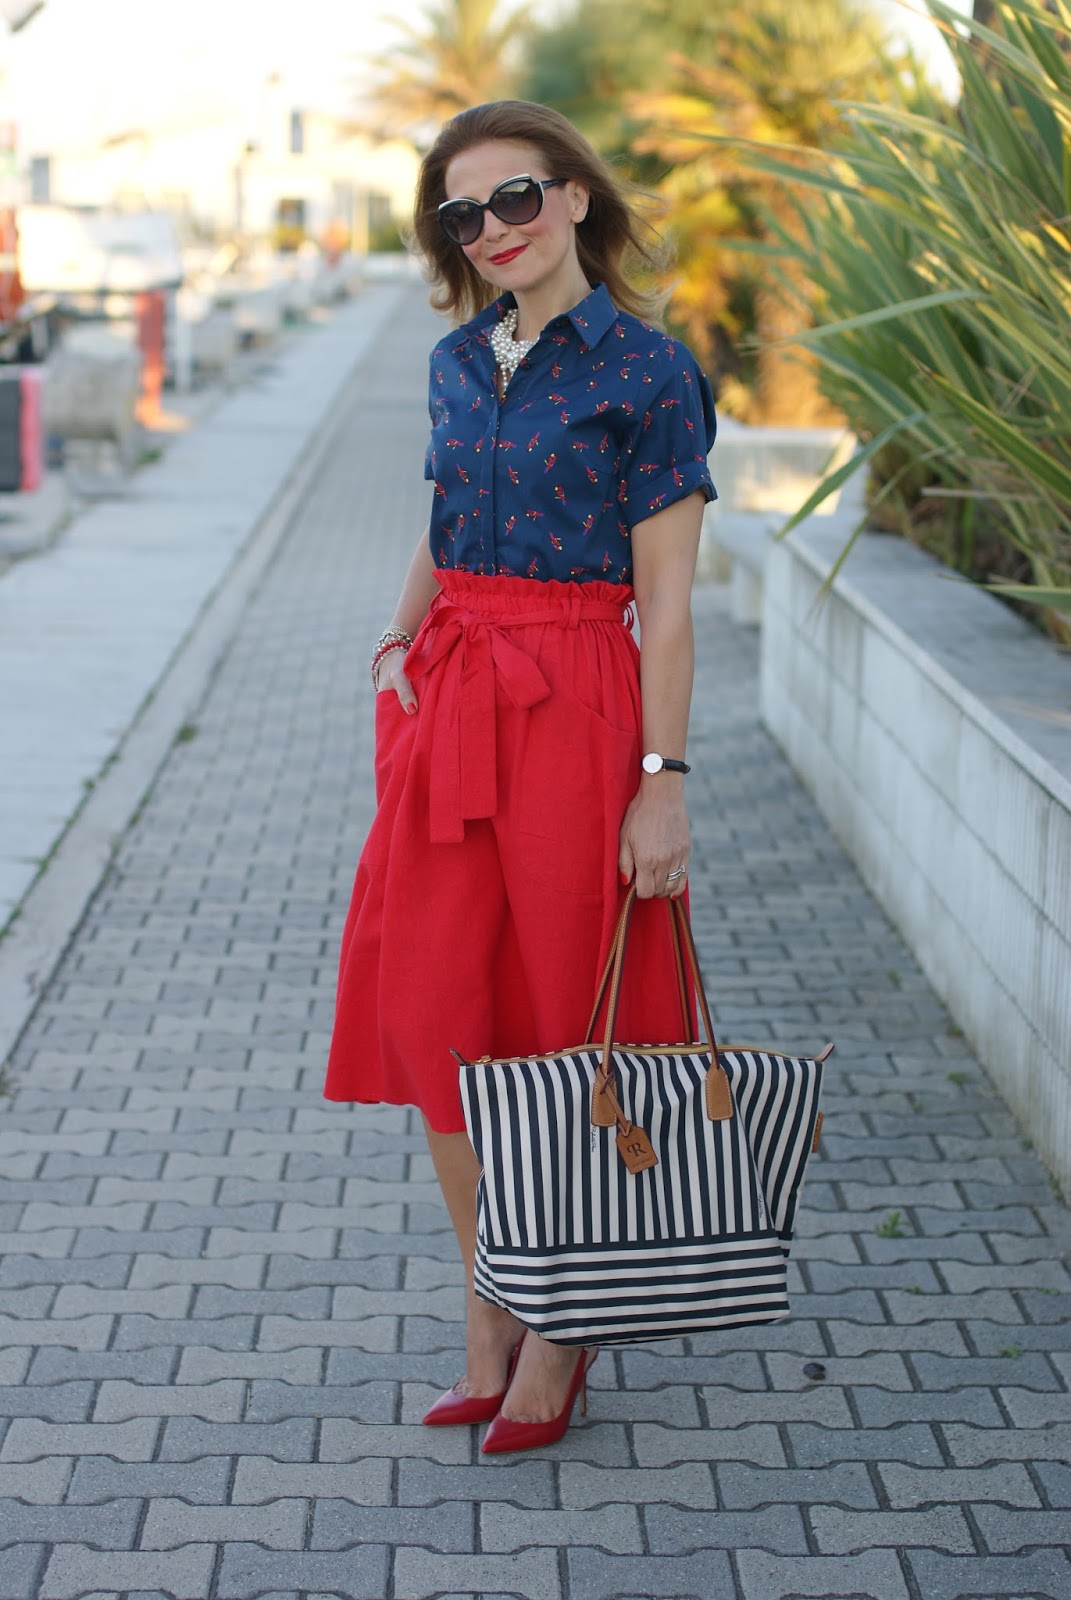 Roberta Pieri striped Robertina bag and Asos red midi skirt on Fashion and Cookies fashion blog for a perfect summer style look